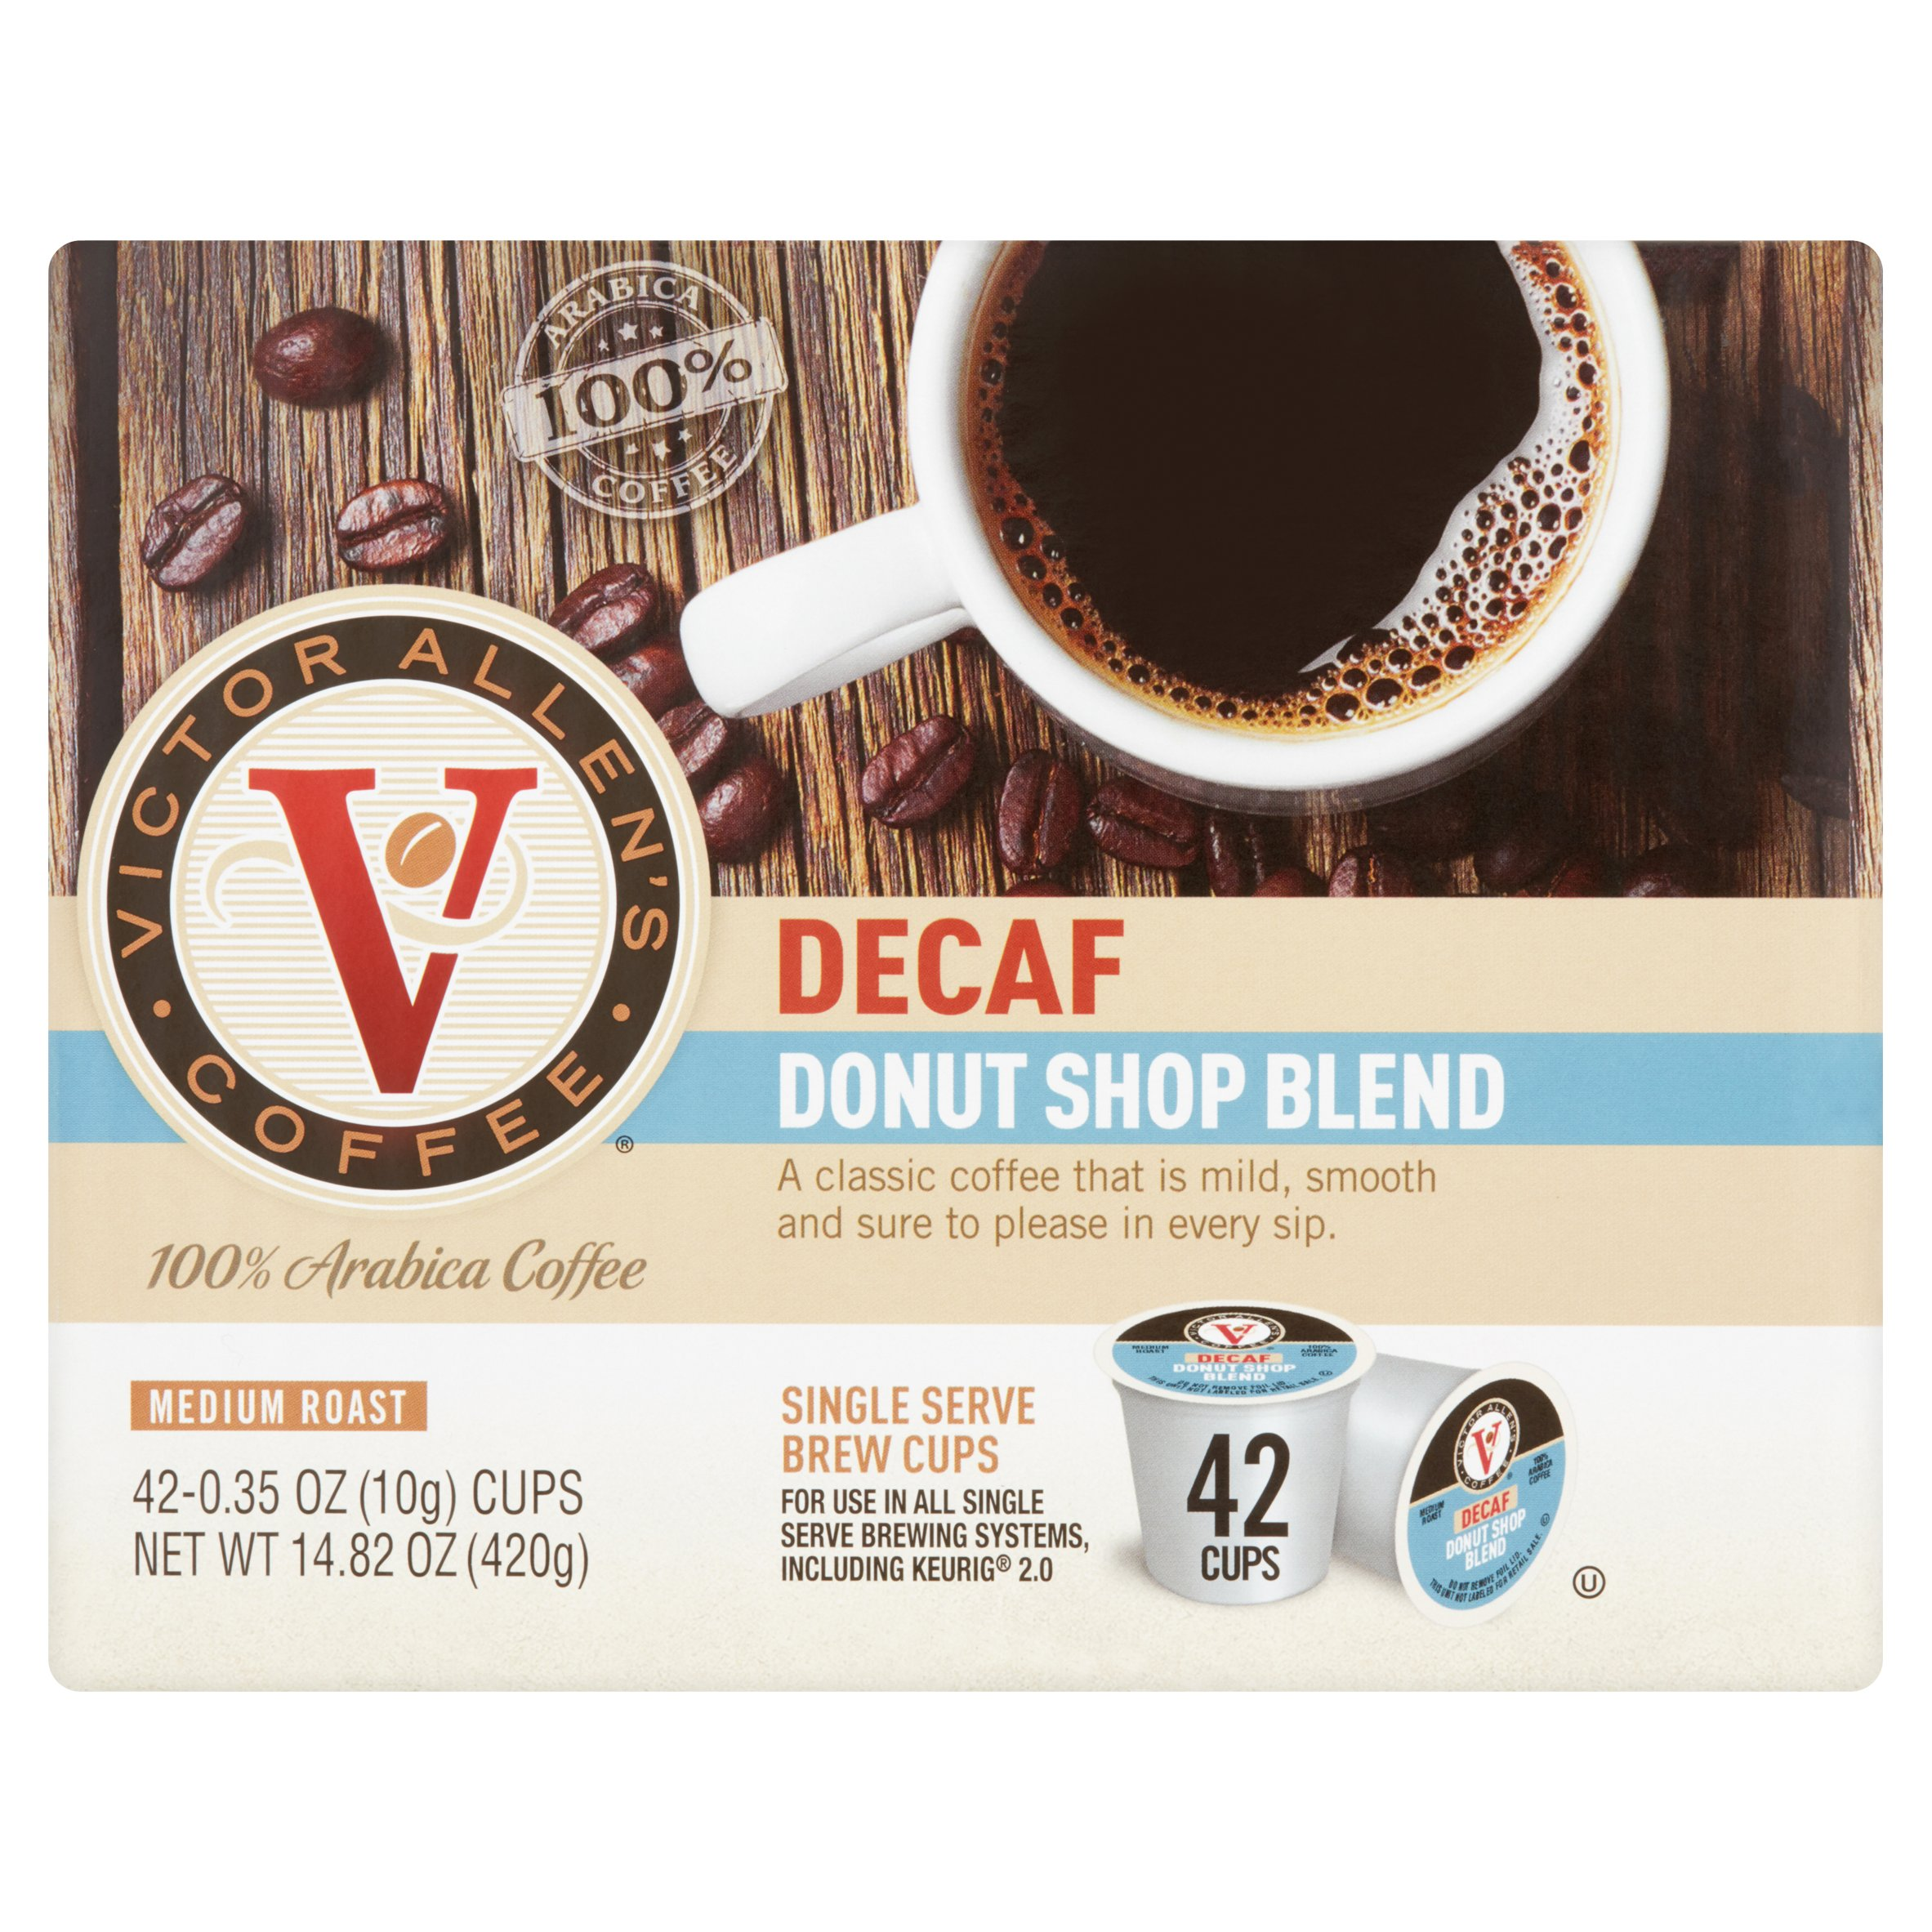 Victor Allen's Coffee Decaf Donut Shop Blend Single Serve Brew Cups, 0.35 oz, 42 count